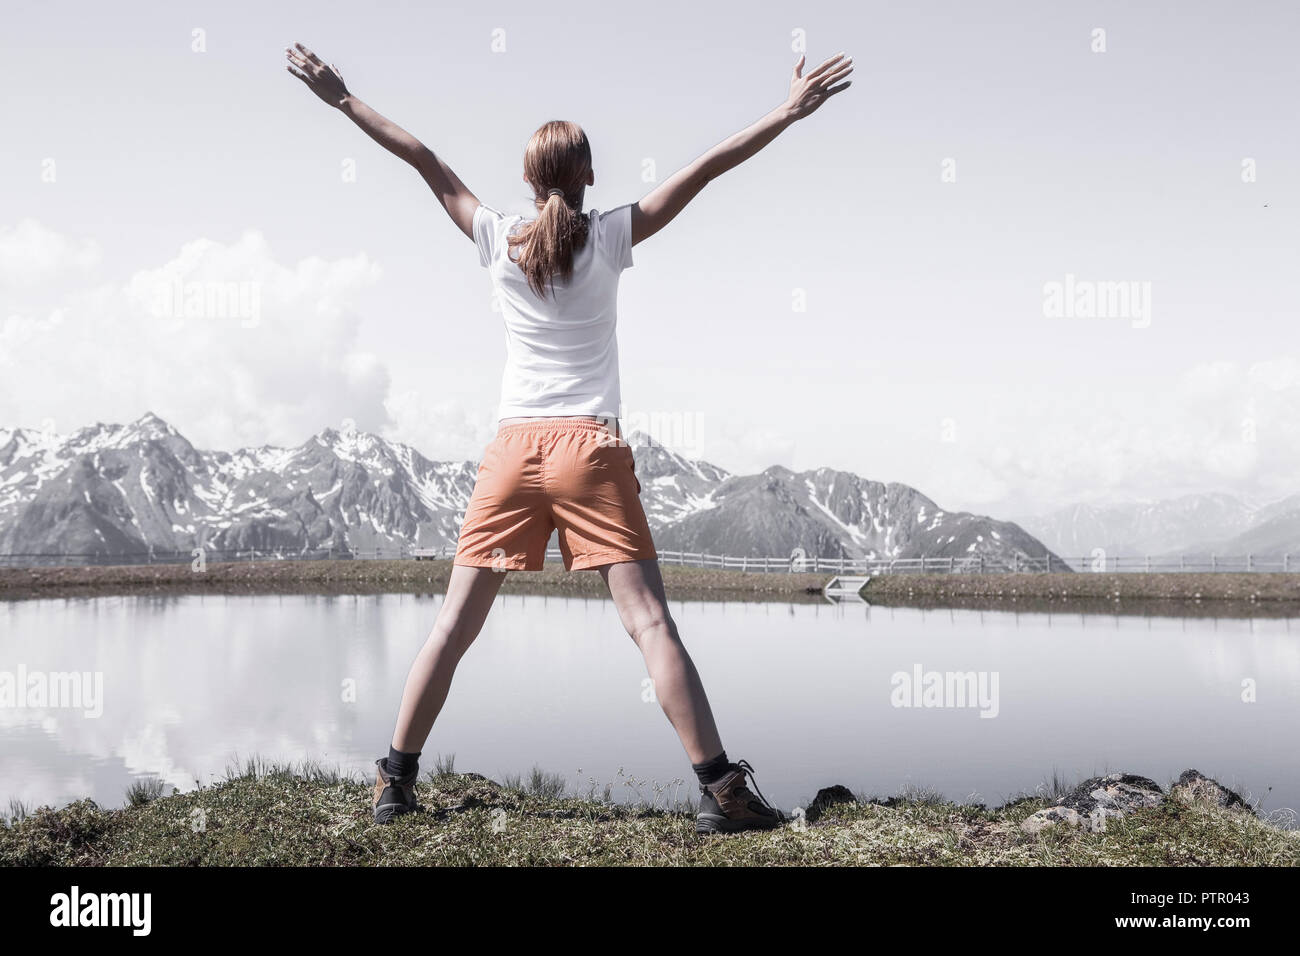 Young woman stretching back in the mountains (Modellfreigabe) - Stock Image